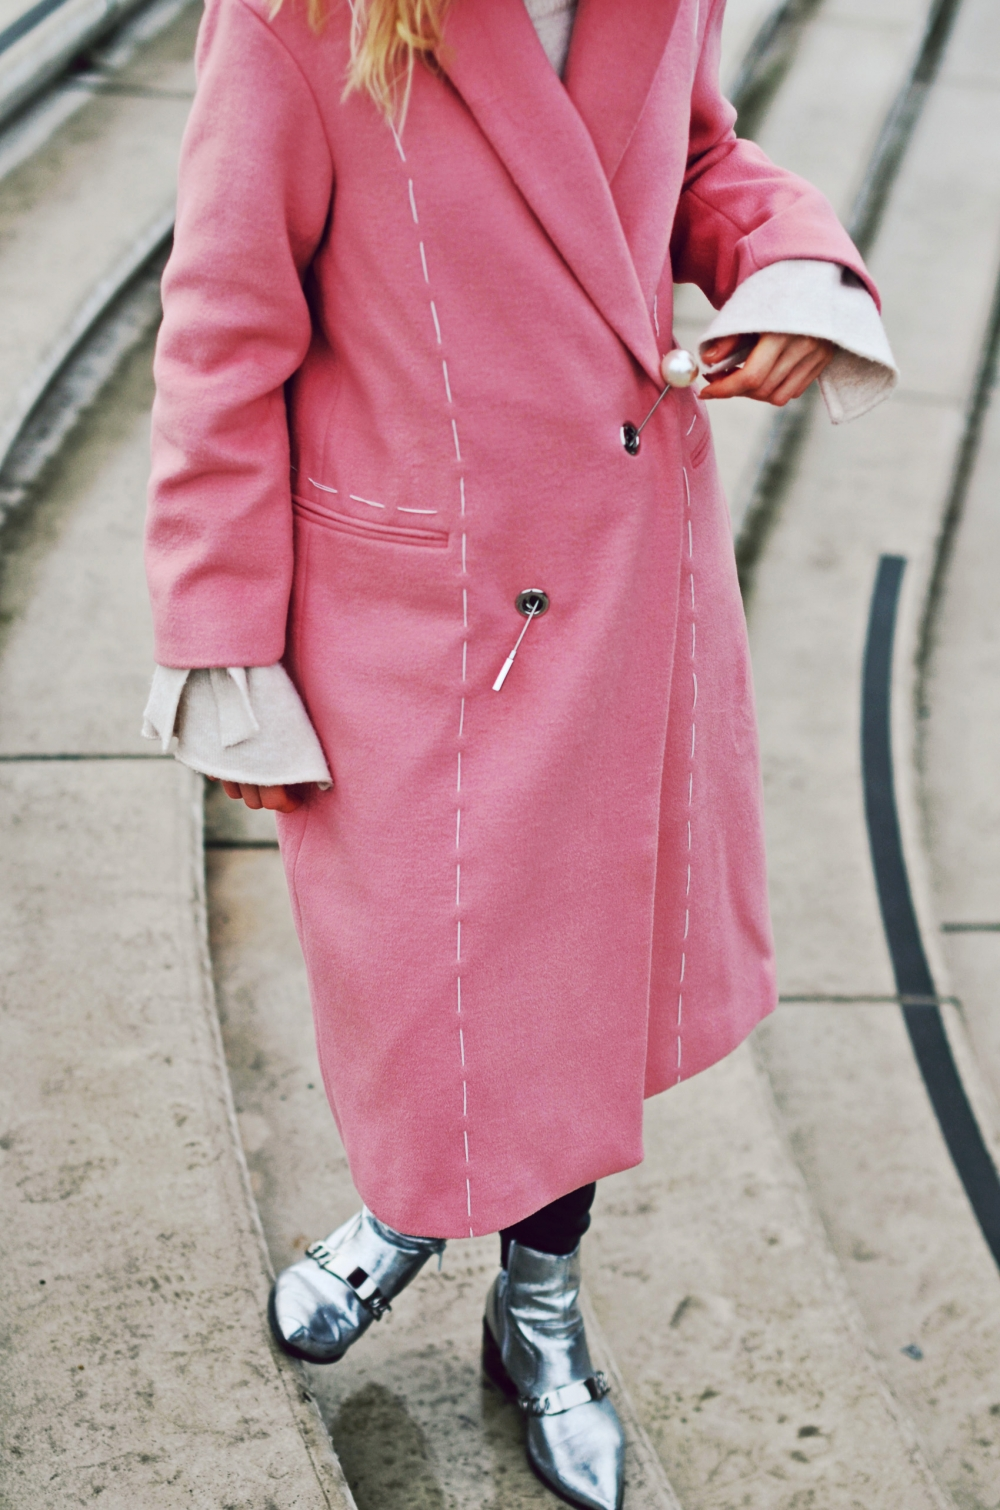 mantel, rosa, pink, trendfarbe, silver boots, silver, metallic, metallik, winter, herbst, fall, coat